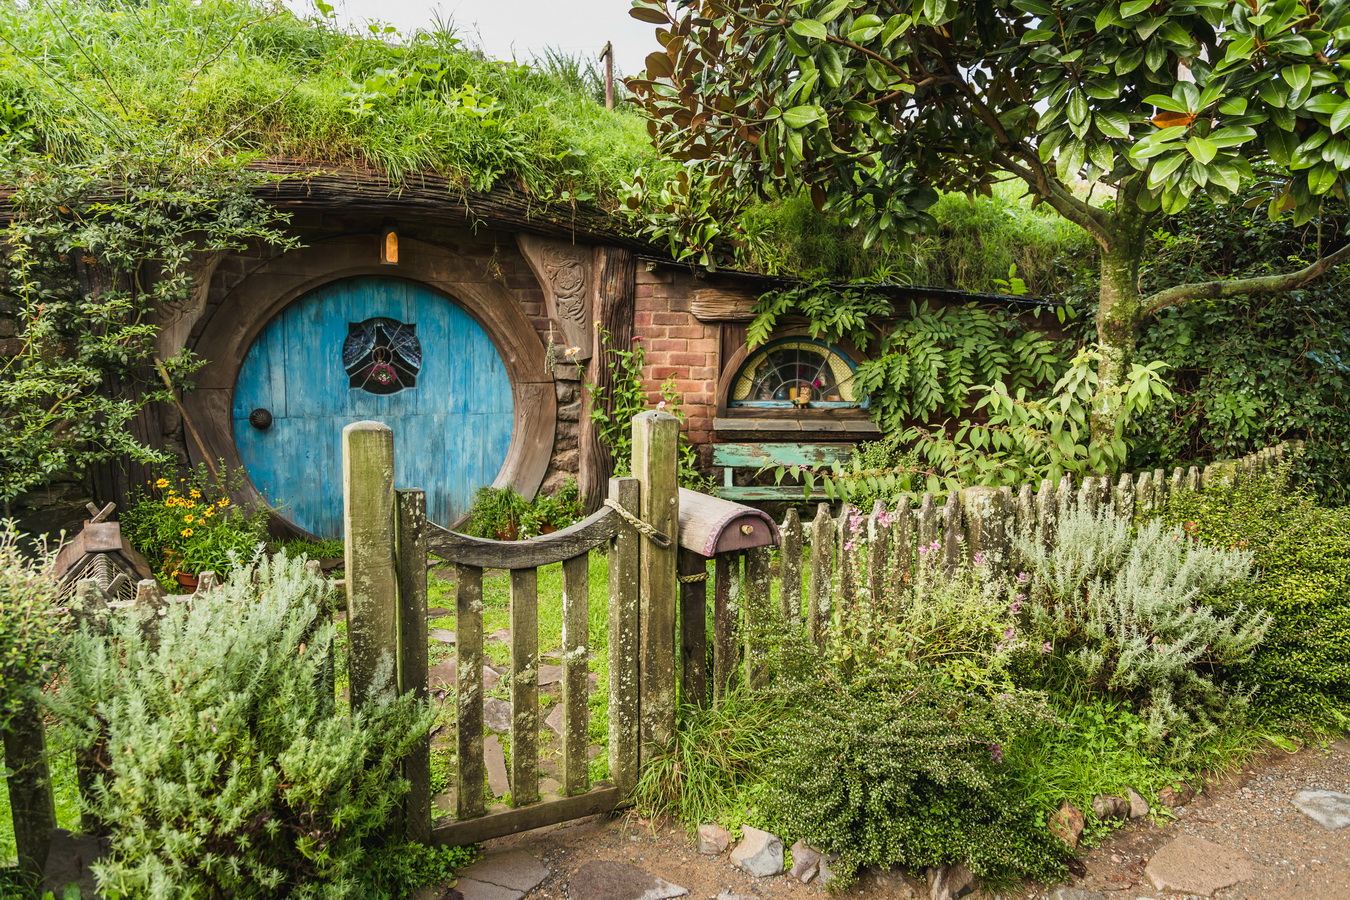 house entrance,The Hobbiton, The Shire,Хоббитшир, Удел, Хоббитания, Заселье, Край,Matamata, North Island ,New Zealand